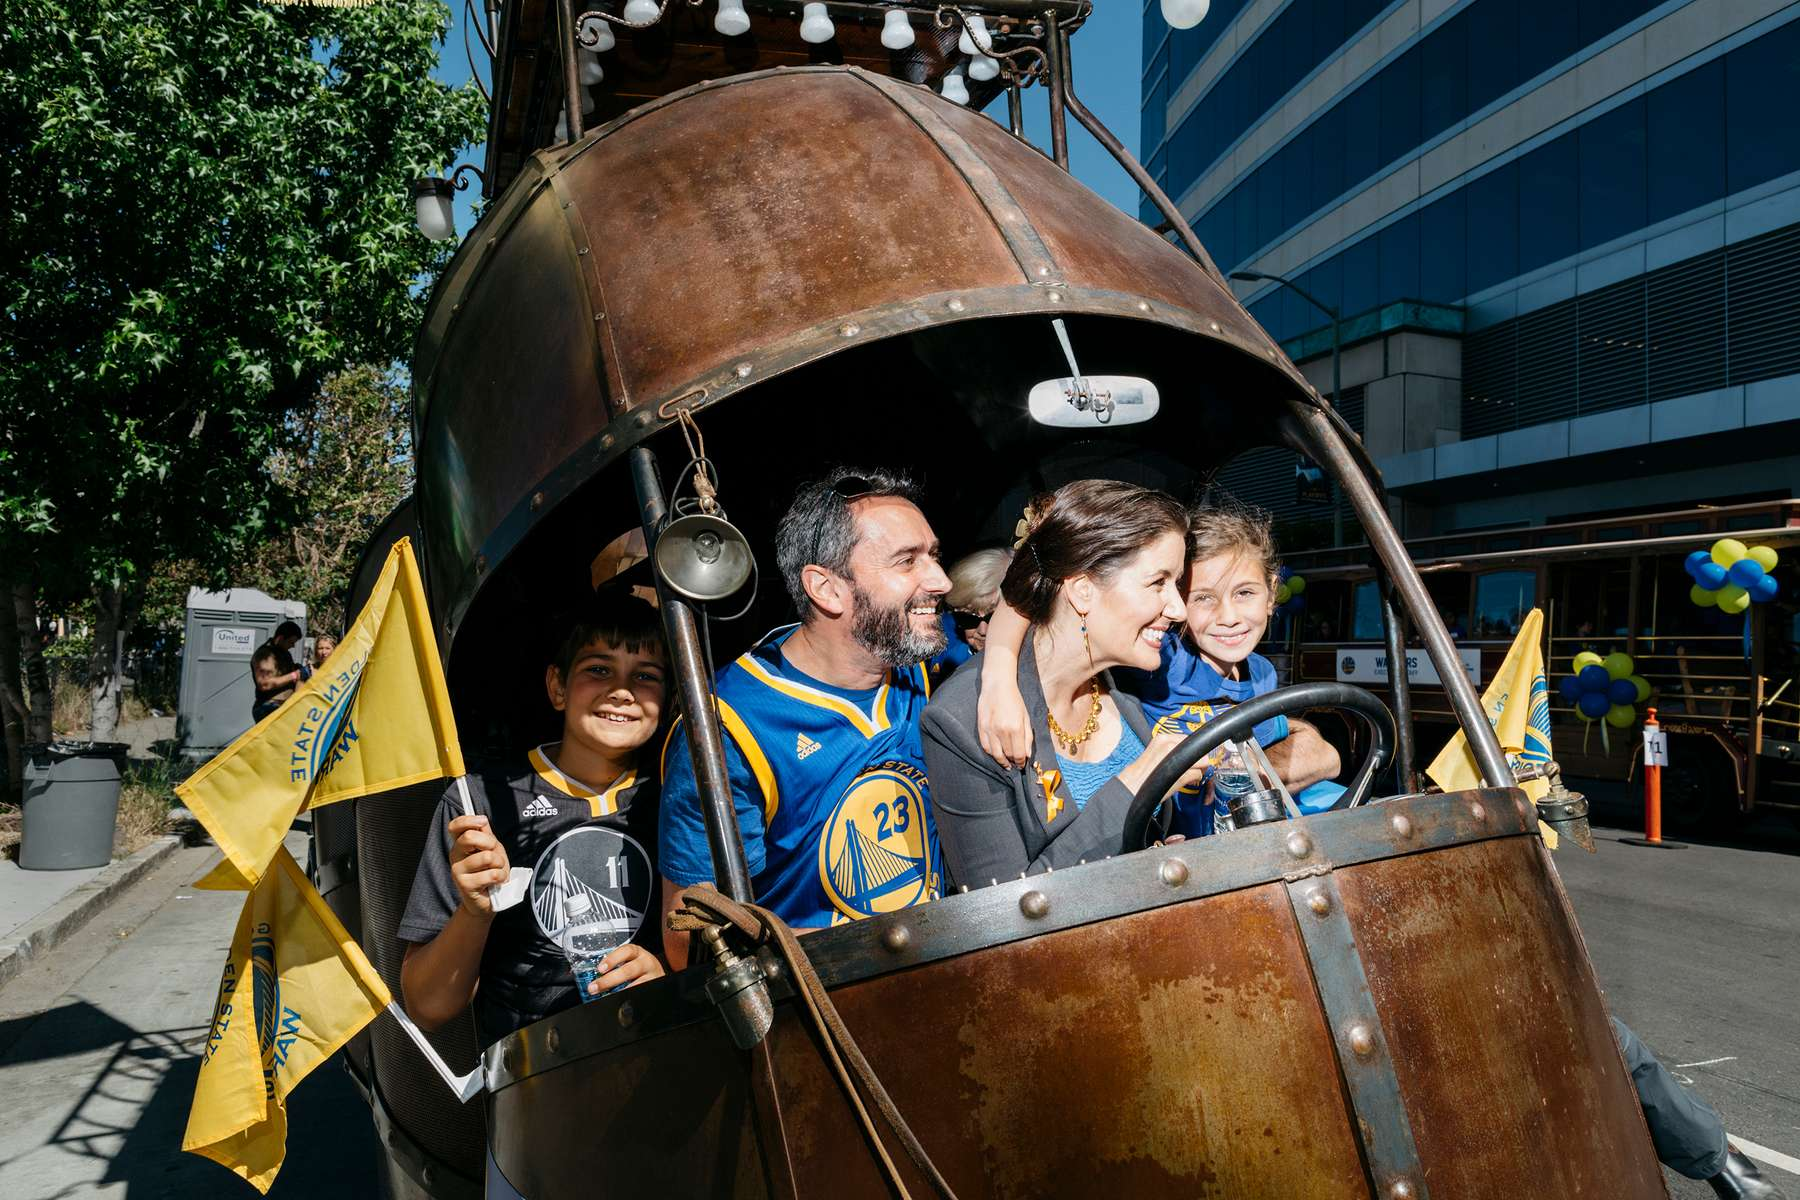 Oakland Mayor Libby Schaaf sits in 'The Golden Mean' snail art car with her husband, Sal (Salvatore) Fahey and children, Dominic, far left, and Lena before the start of the Warriors Championship parade on June 15, 2017.